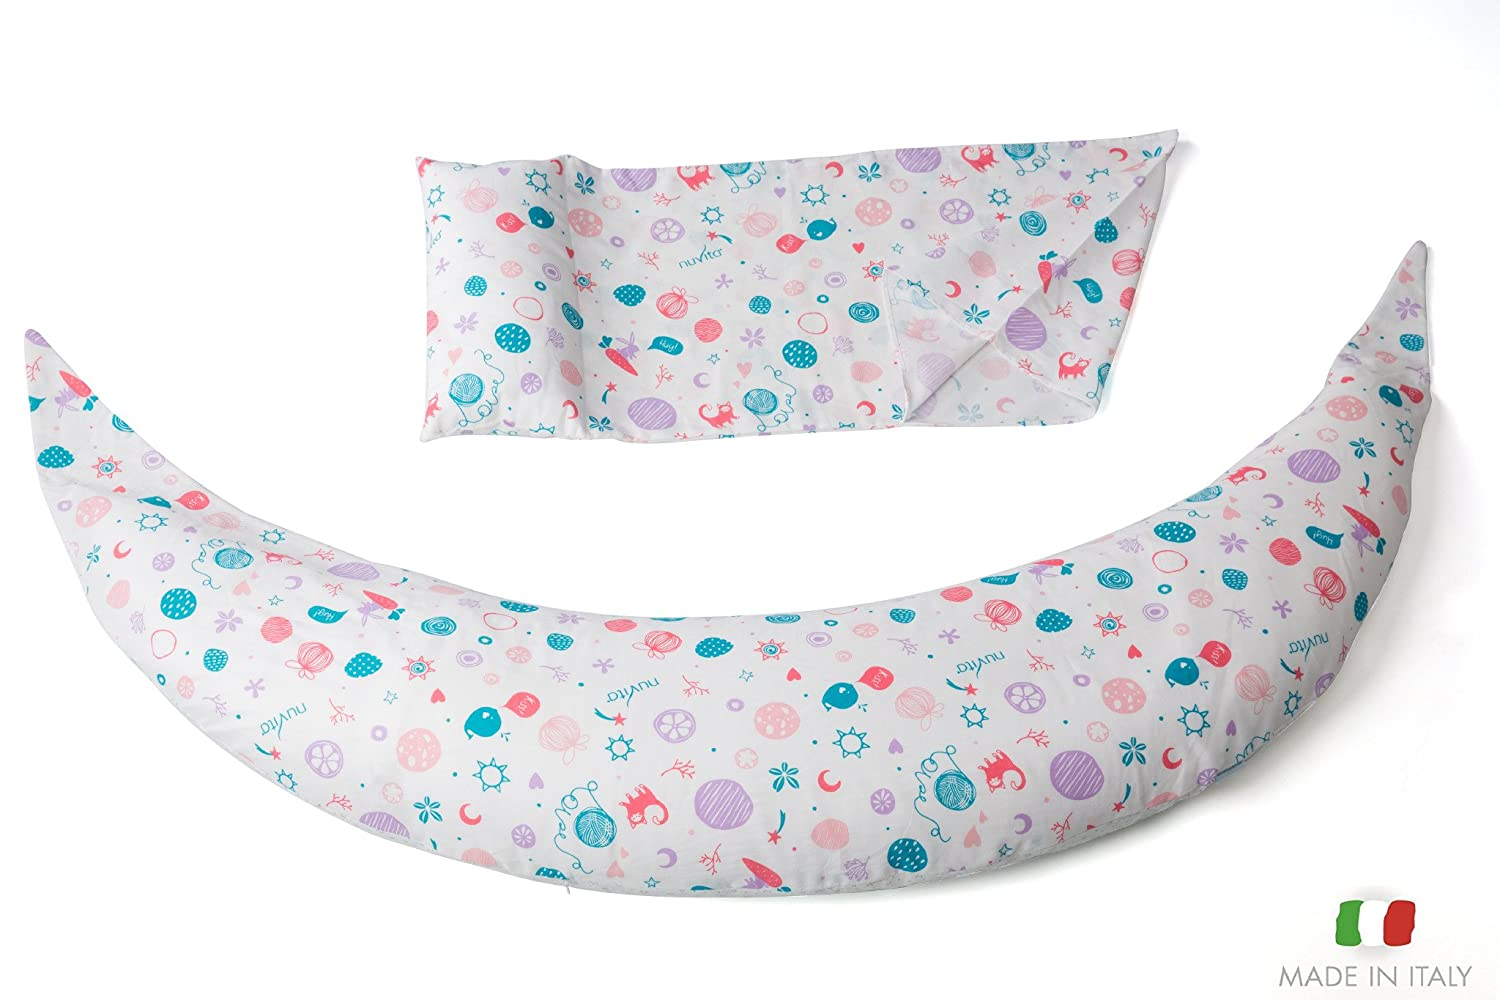 Breastfeeding and Nursing Pillow Made in Italy Nuvita 7100 DreamWizard Full Body Pregnancy Pillow and Maternity Pillow with Extra Back Support Lady White 100/% Cotton Washable Case